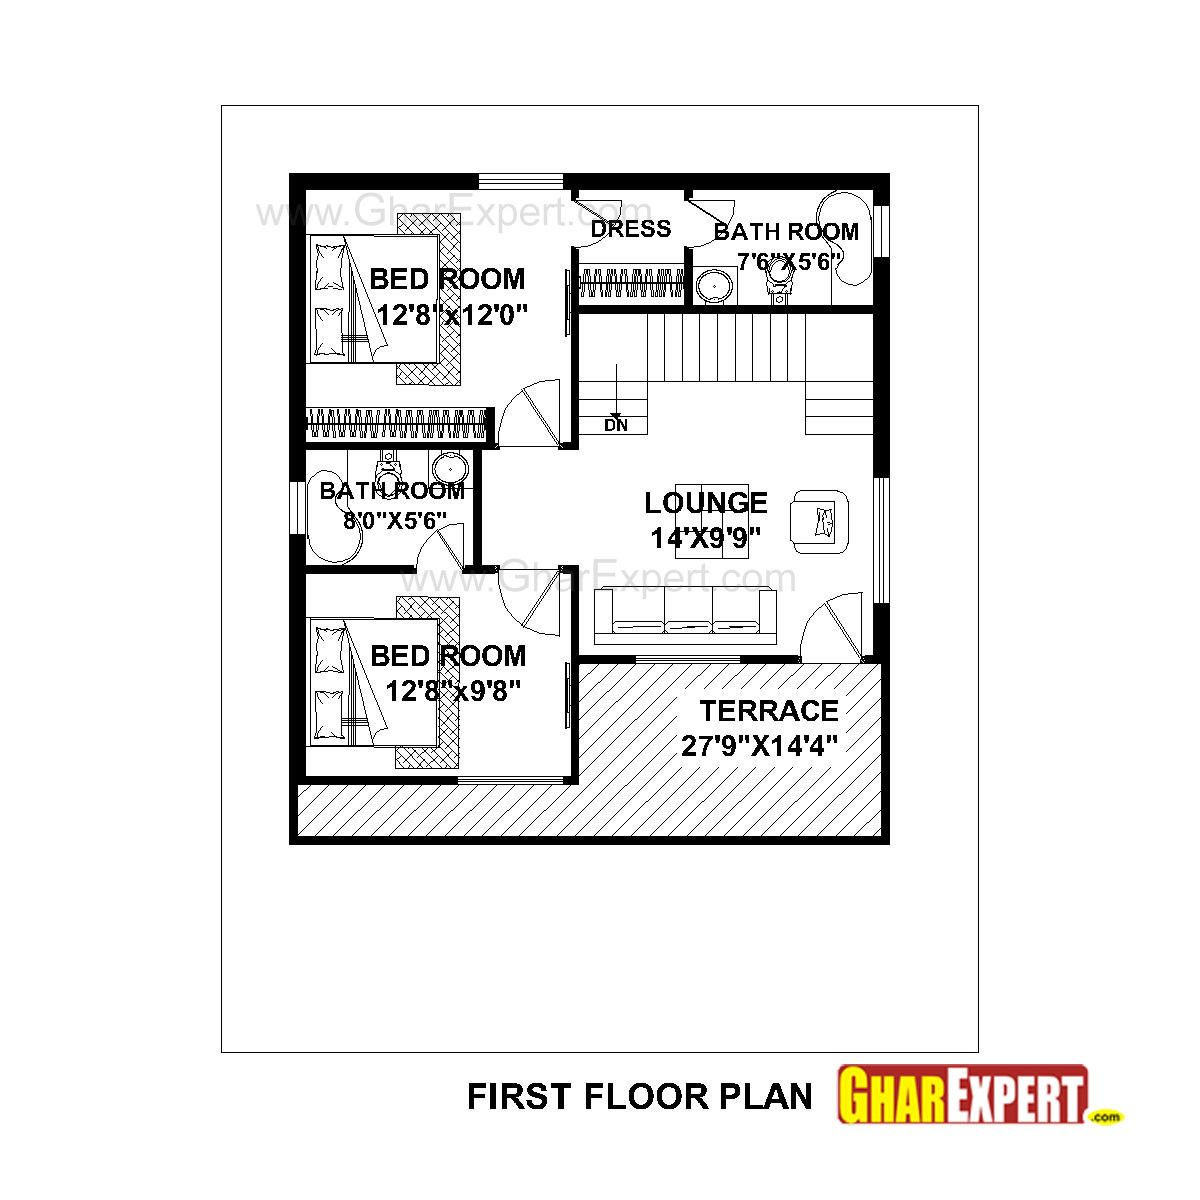 17 Awesome 150 Sq Yards West Facing House Plans Images House Plans Budget House Plans West Facing House